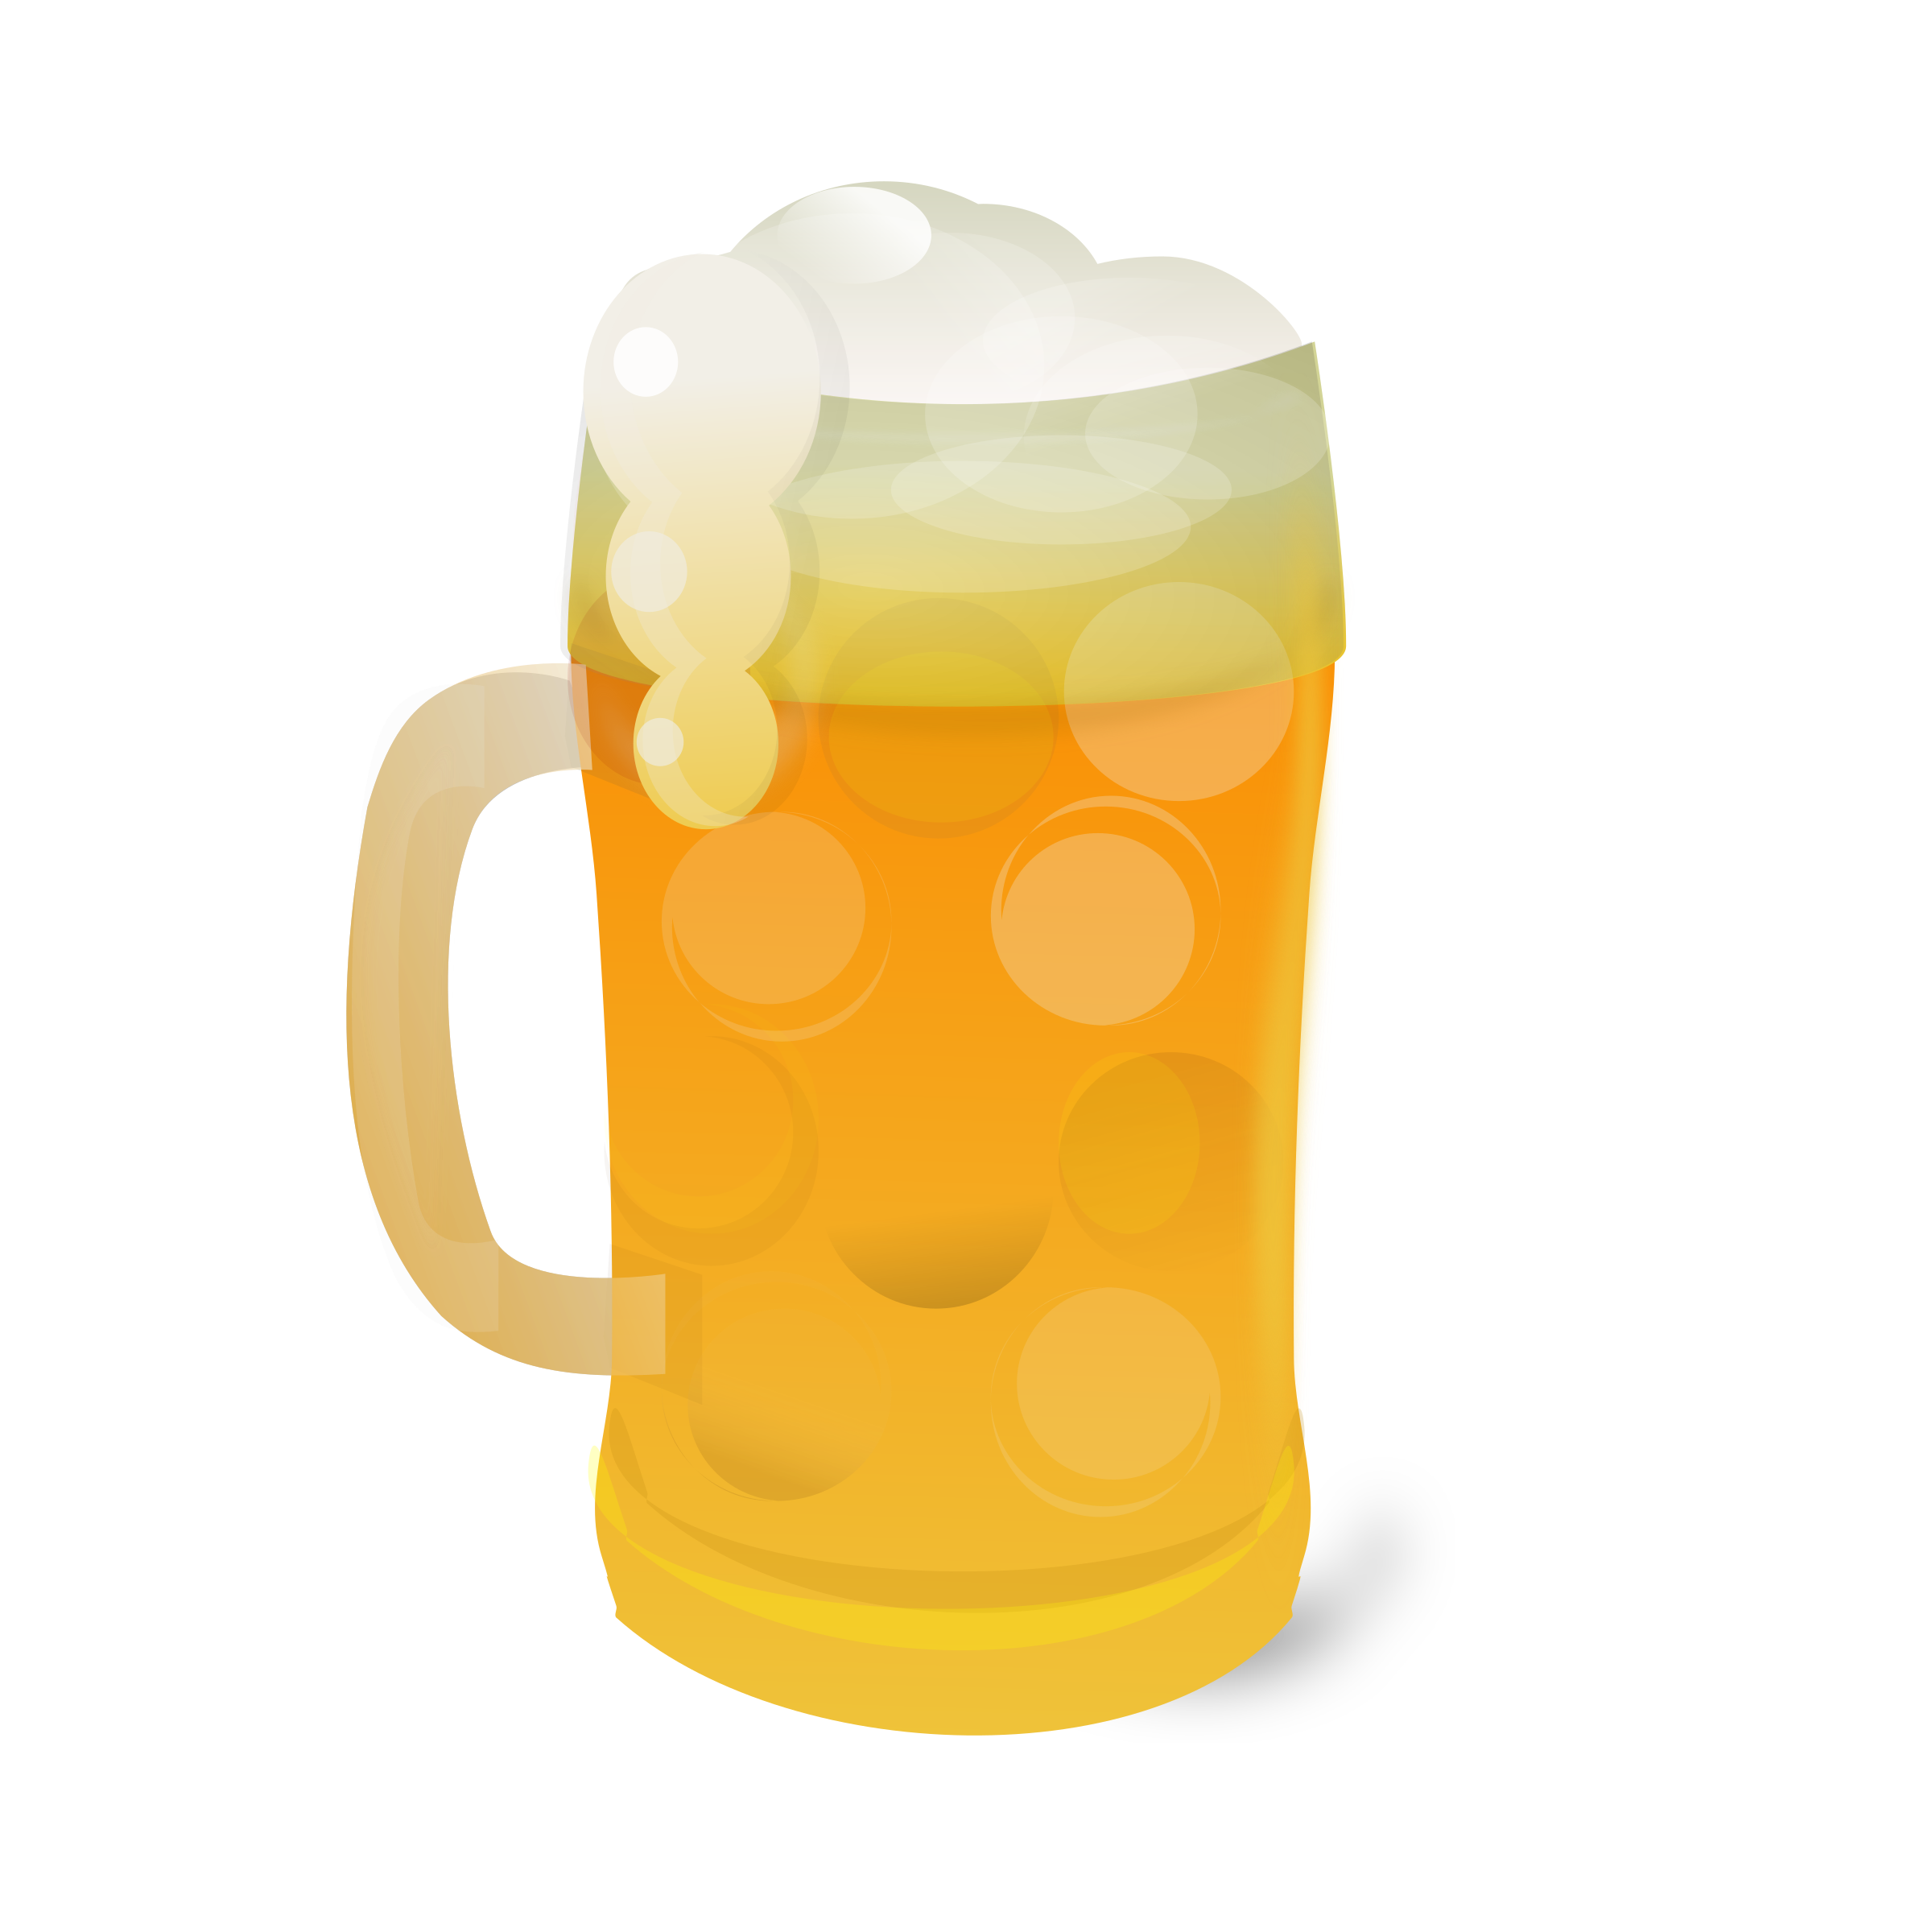 Stein icons png free. Beer clipart icon